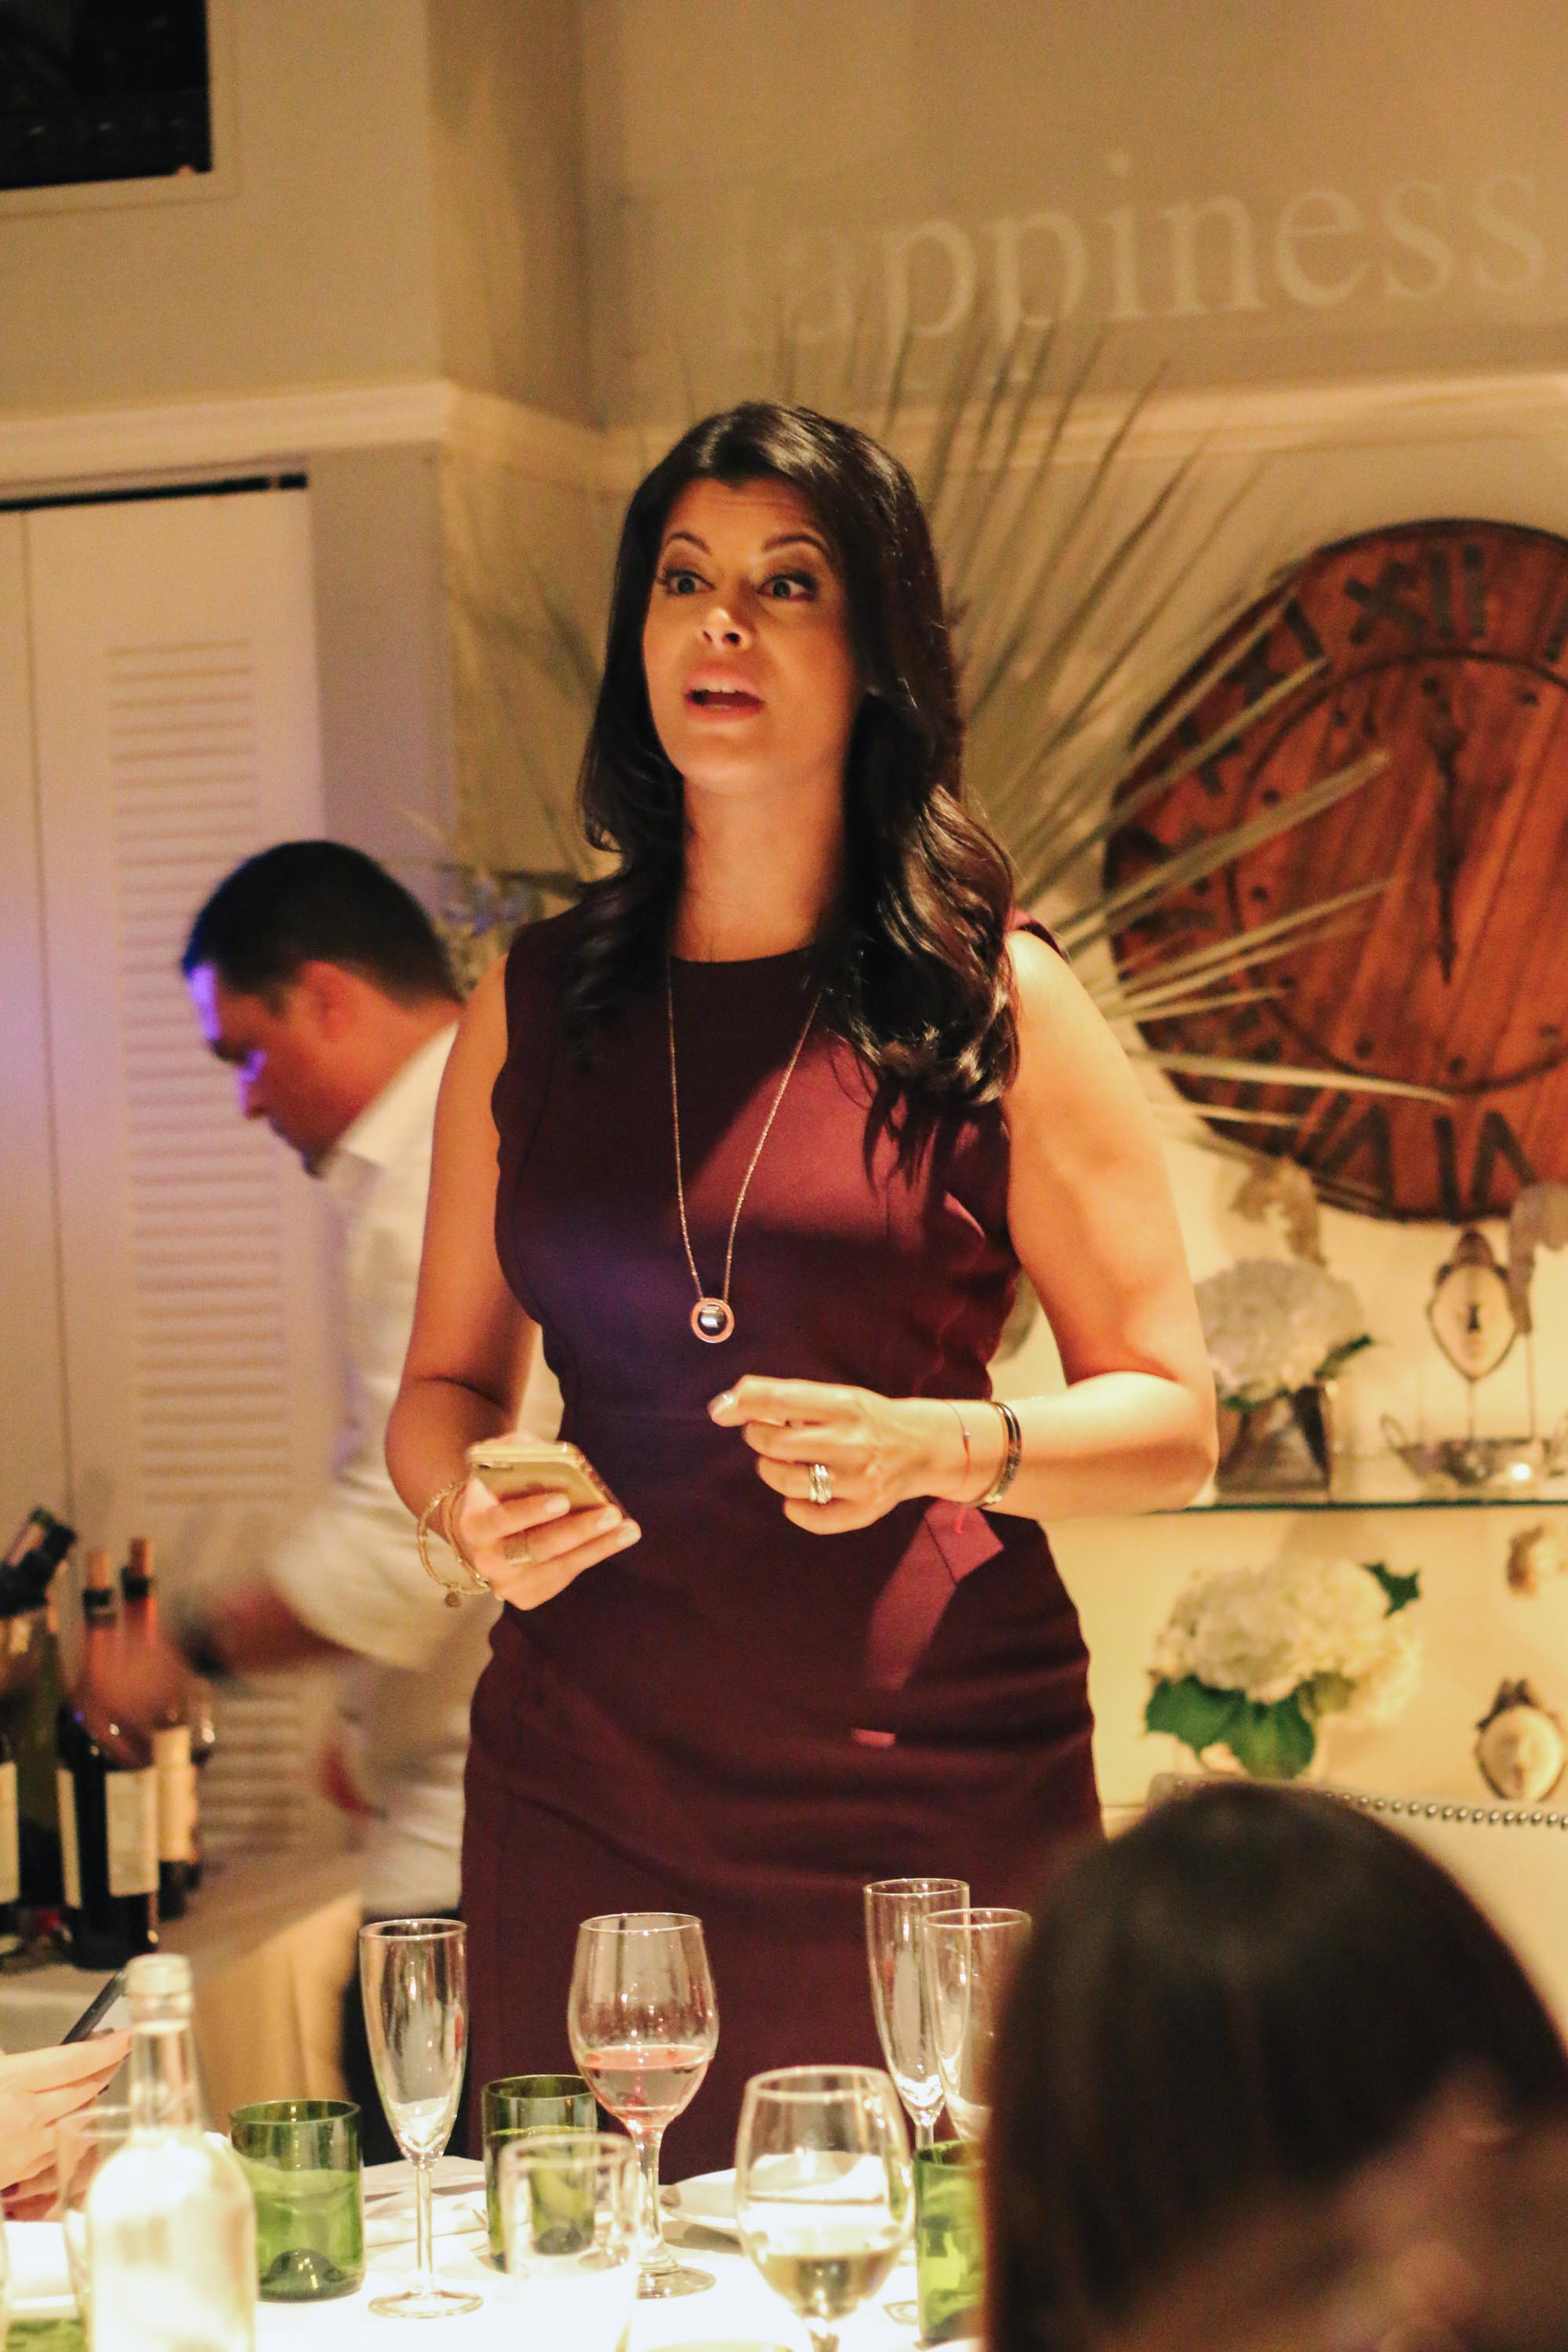 Women Who Wine Uncorked Conversations-Dolores Lolita-Miami Wine Events-Wine Tasting Miami-14.jpg